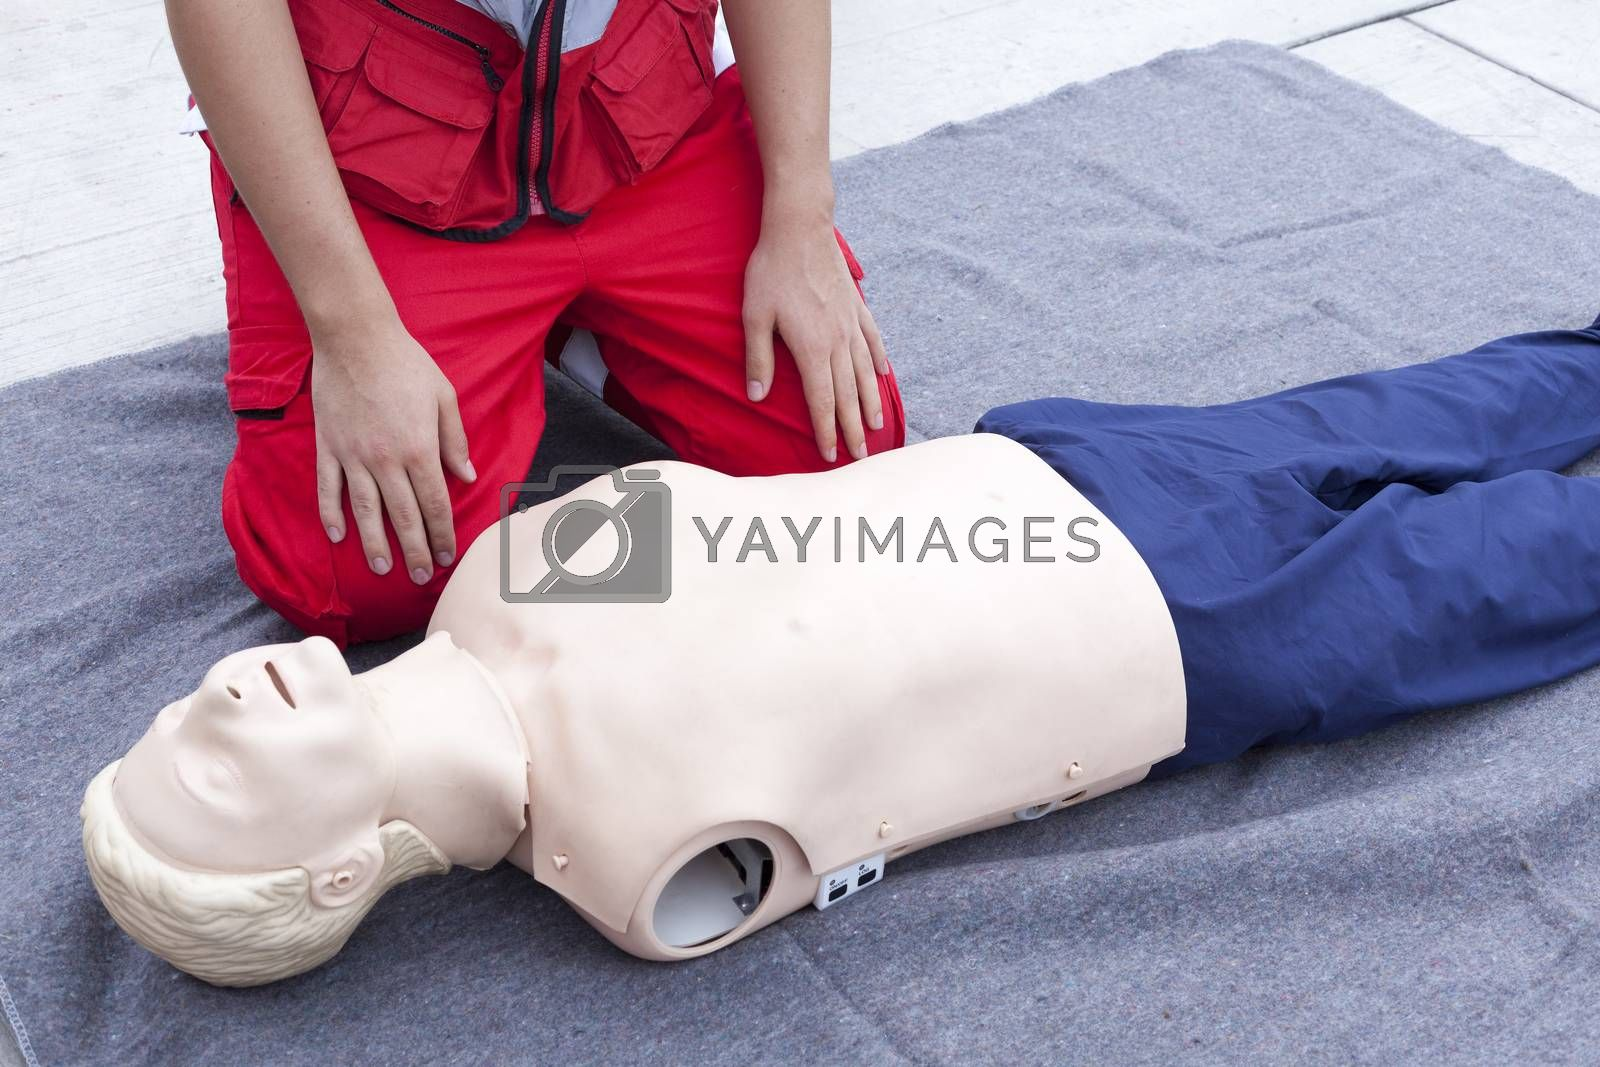 First aid training detail  by wellphoto